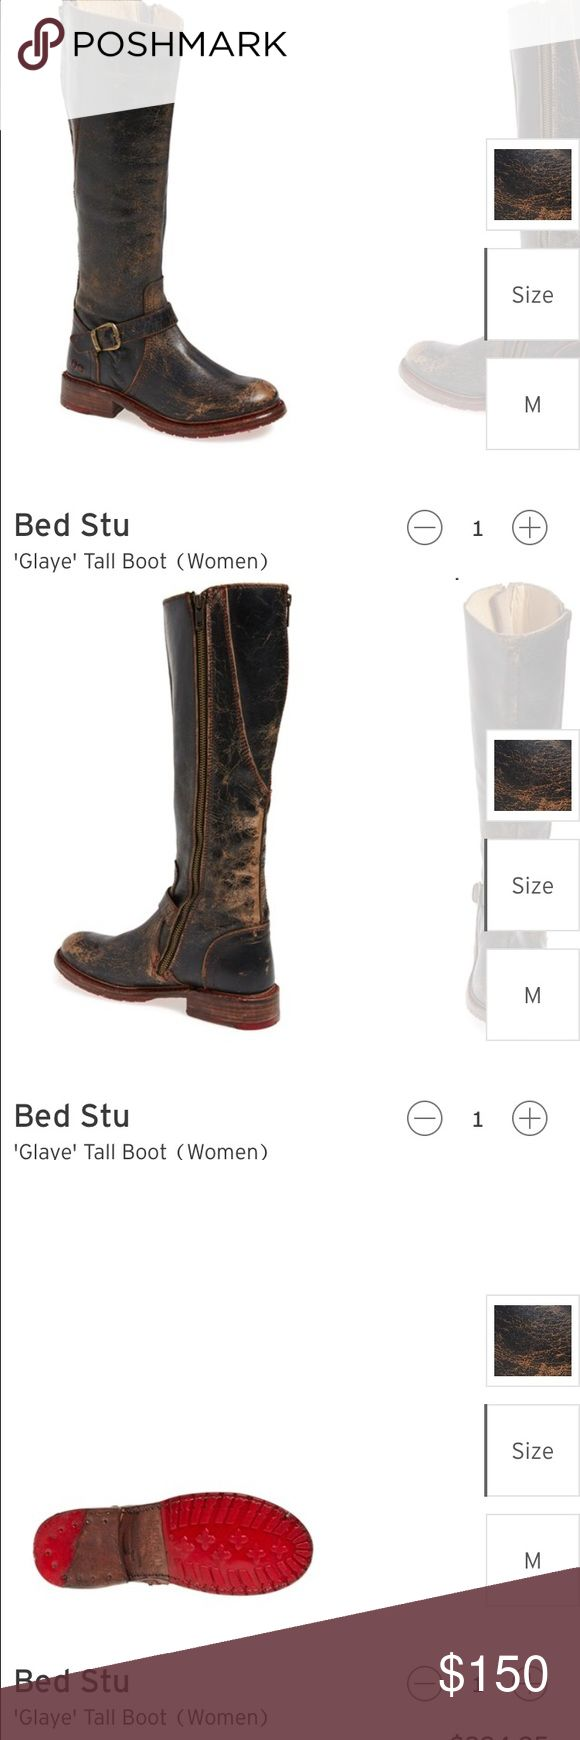 """Bed Stu """"Gayle"""" boot Beautifully crafted Bed Stu boot.  So comfortable and stylish.  Size 8.5, but runs big.  Worn twice.  No flaws Bed Stu Shoes Winter & Rain Boots"""